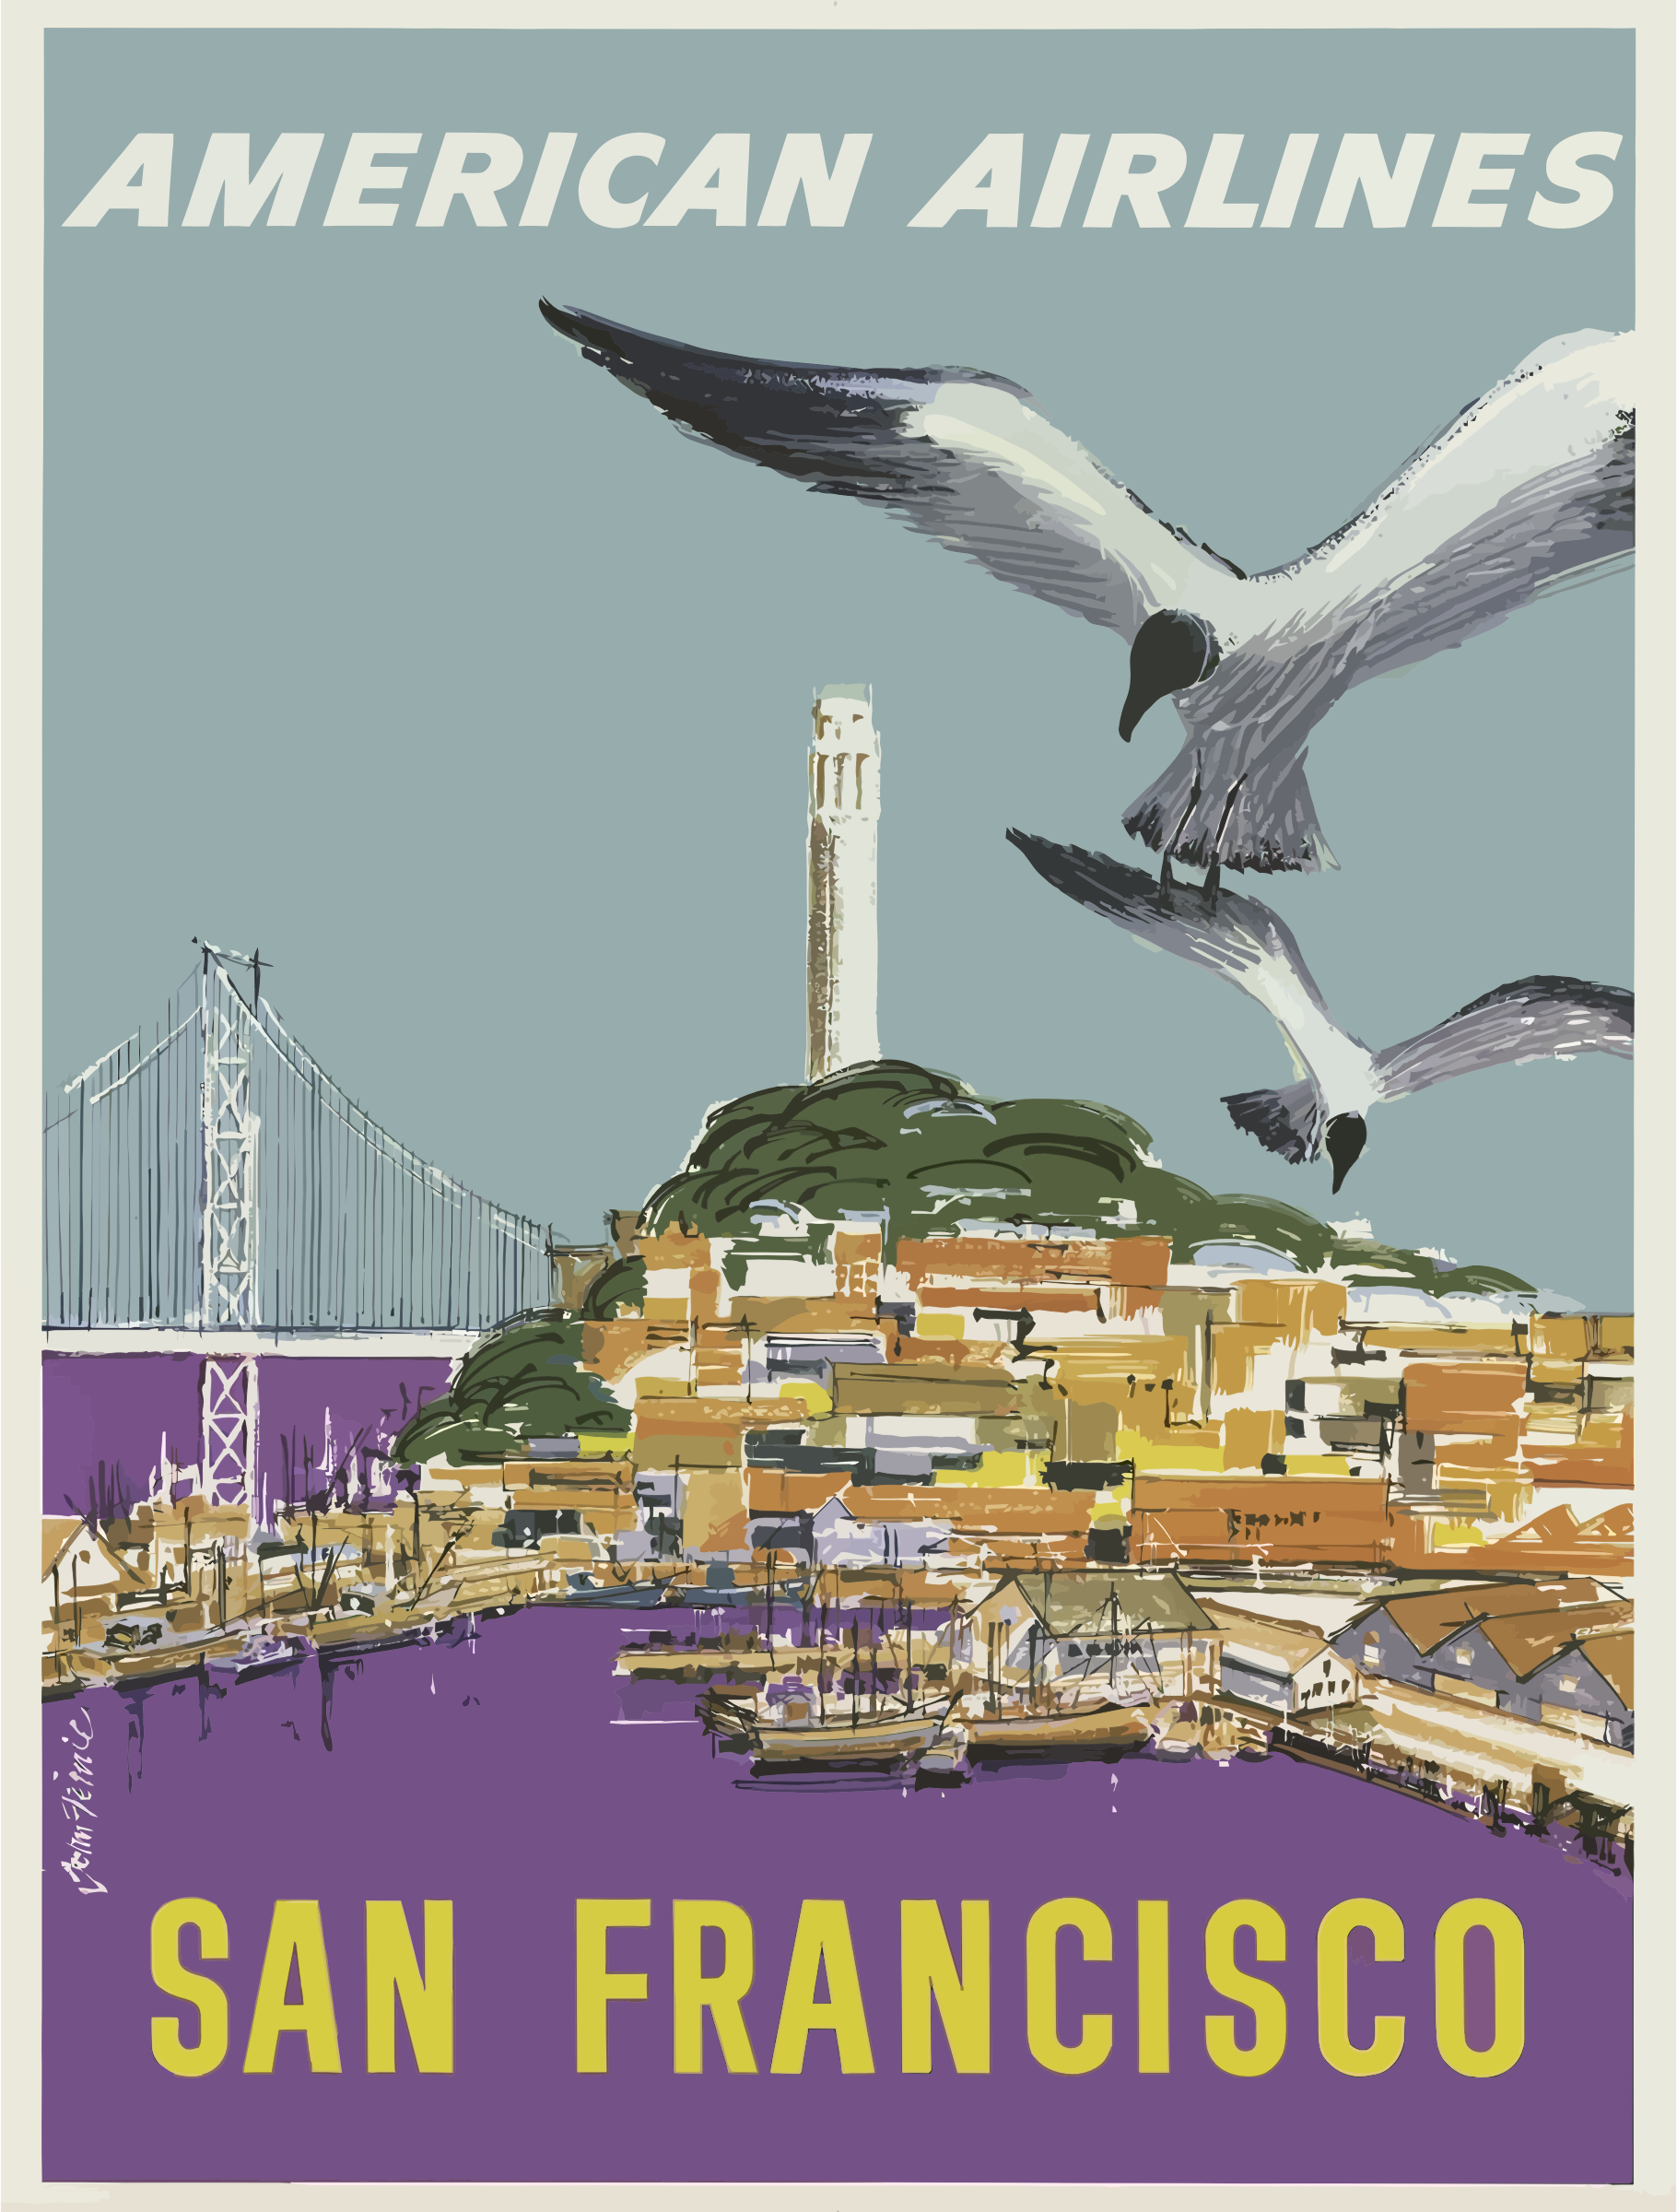 Vintage Travel Poster San Francisco by GDJ